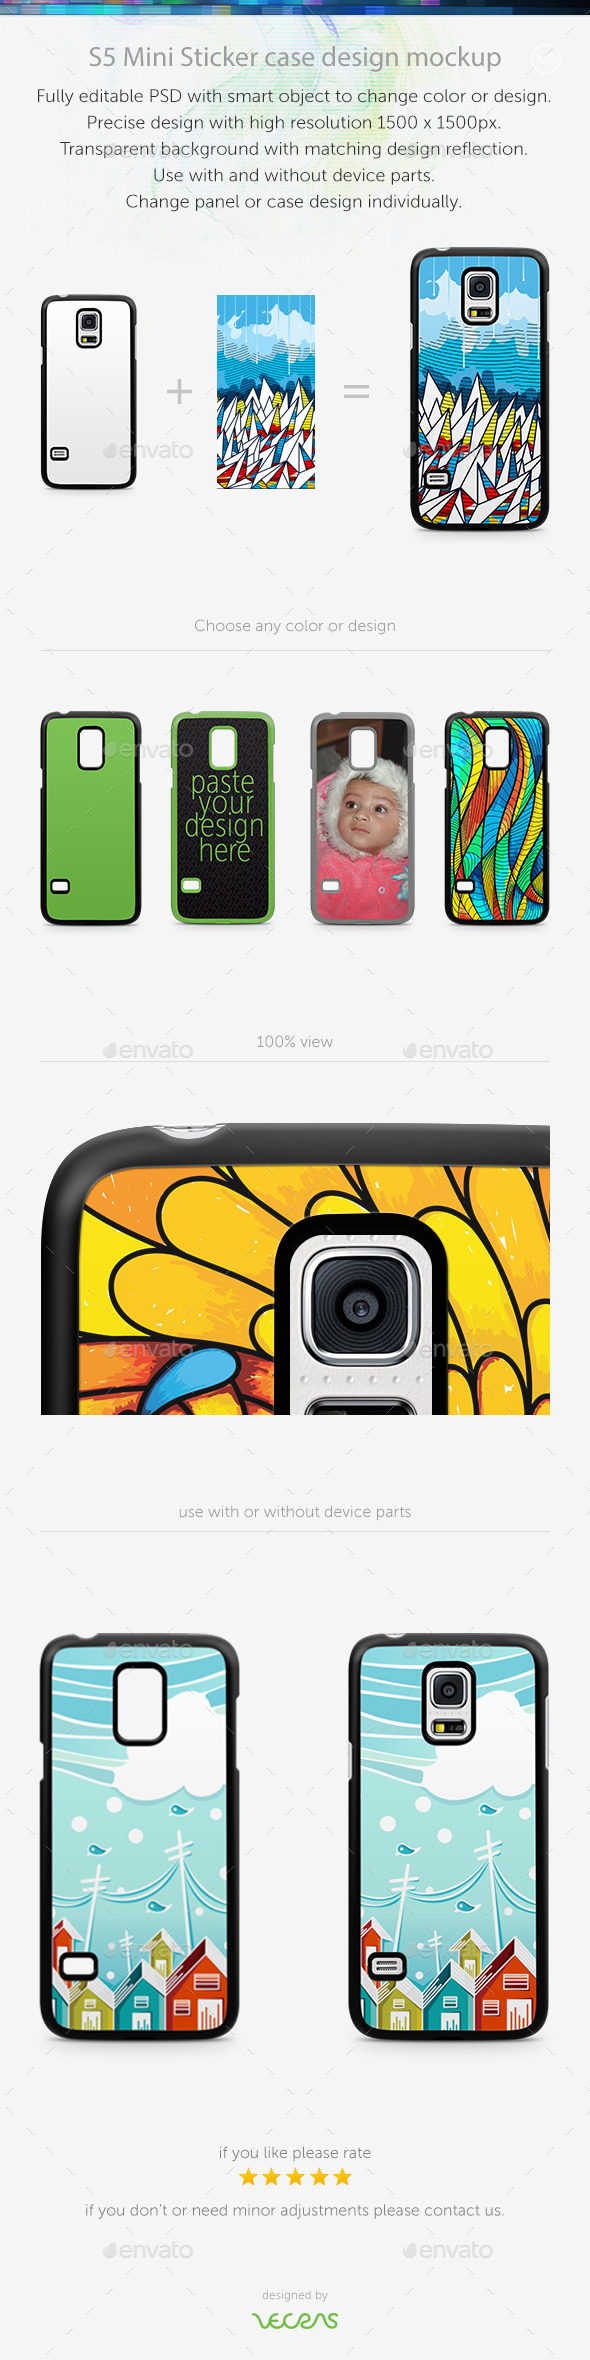 GraphicRiver S5 Mini Sticker Case Design Mockup 10401126